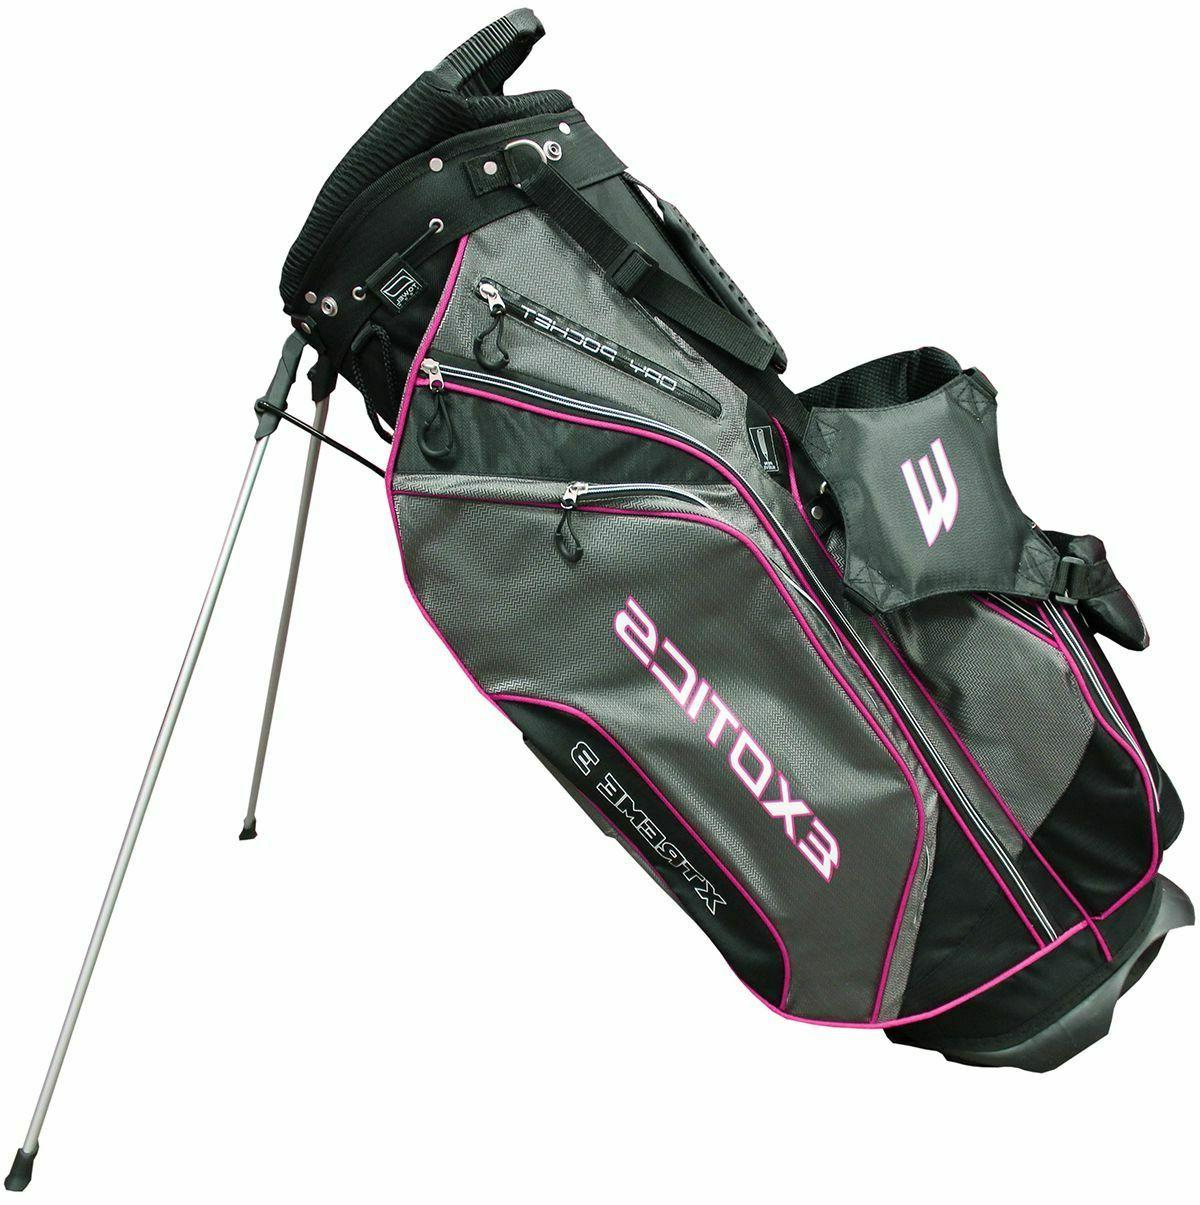 Tour Extreme 3 Stand - Available - NEW